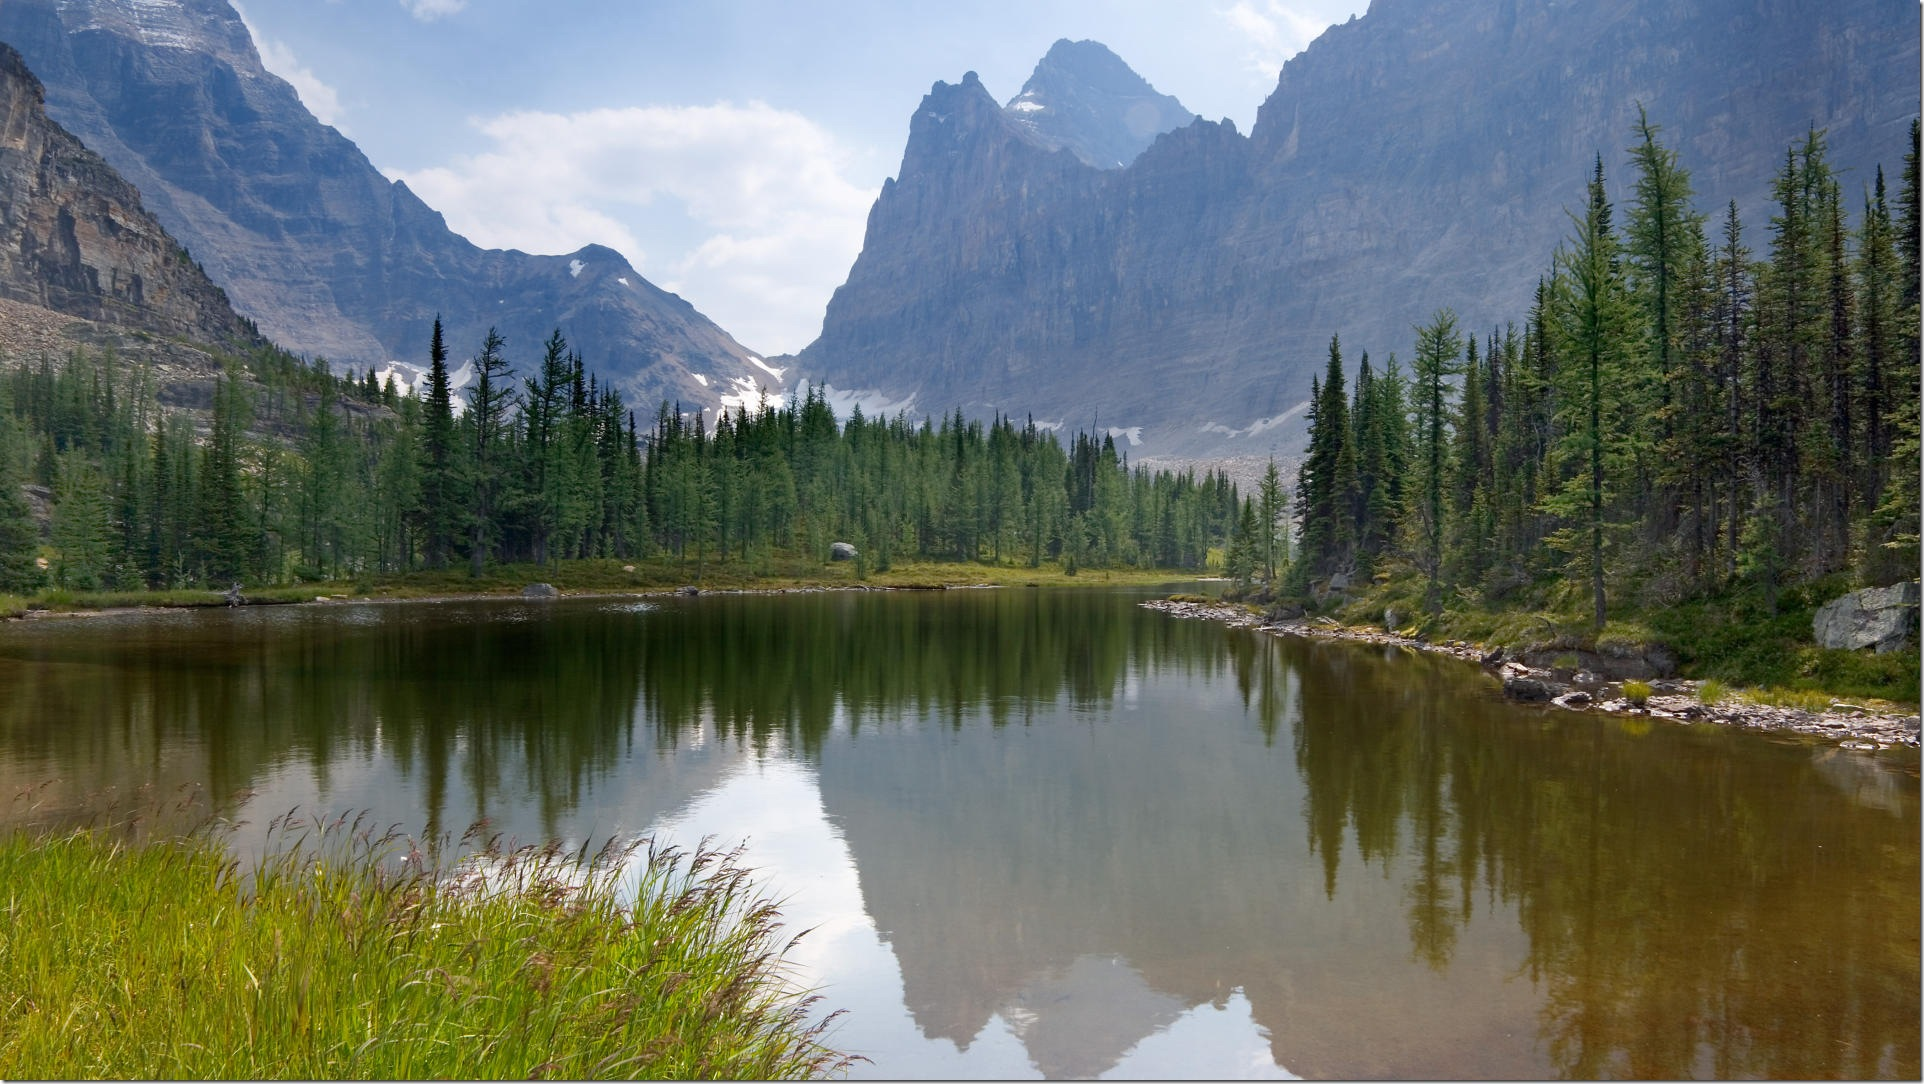 Moor Lakes, Opabin Highland, Yoho National Park, B.C.